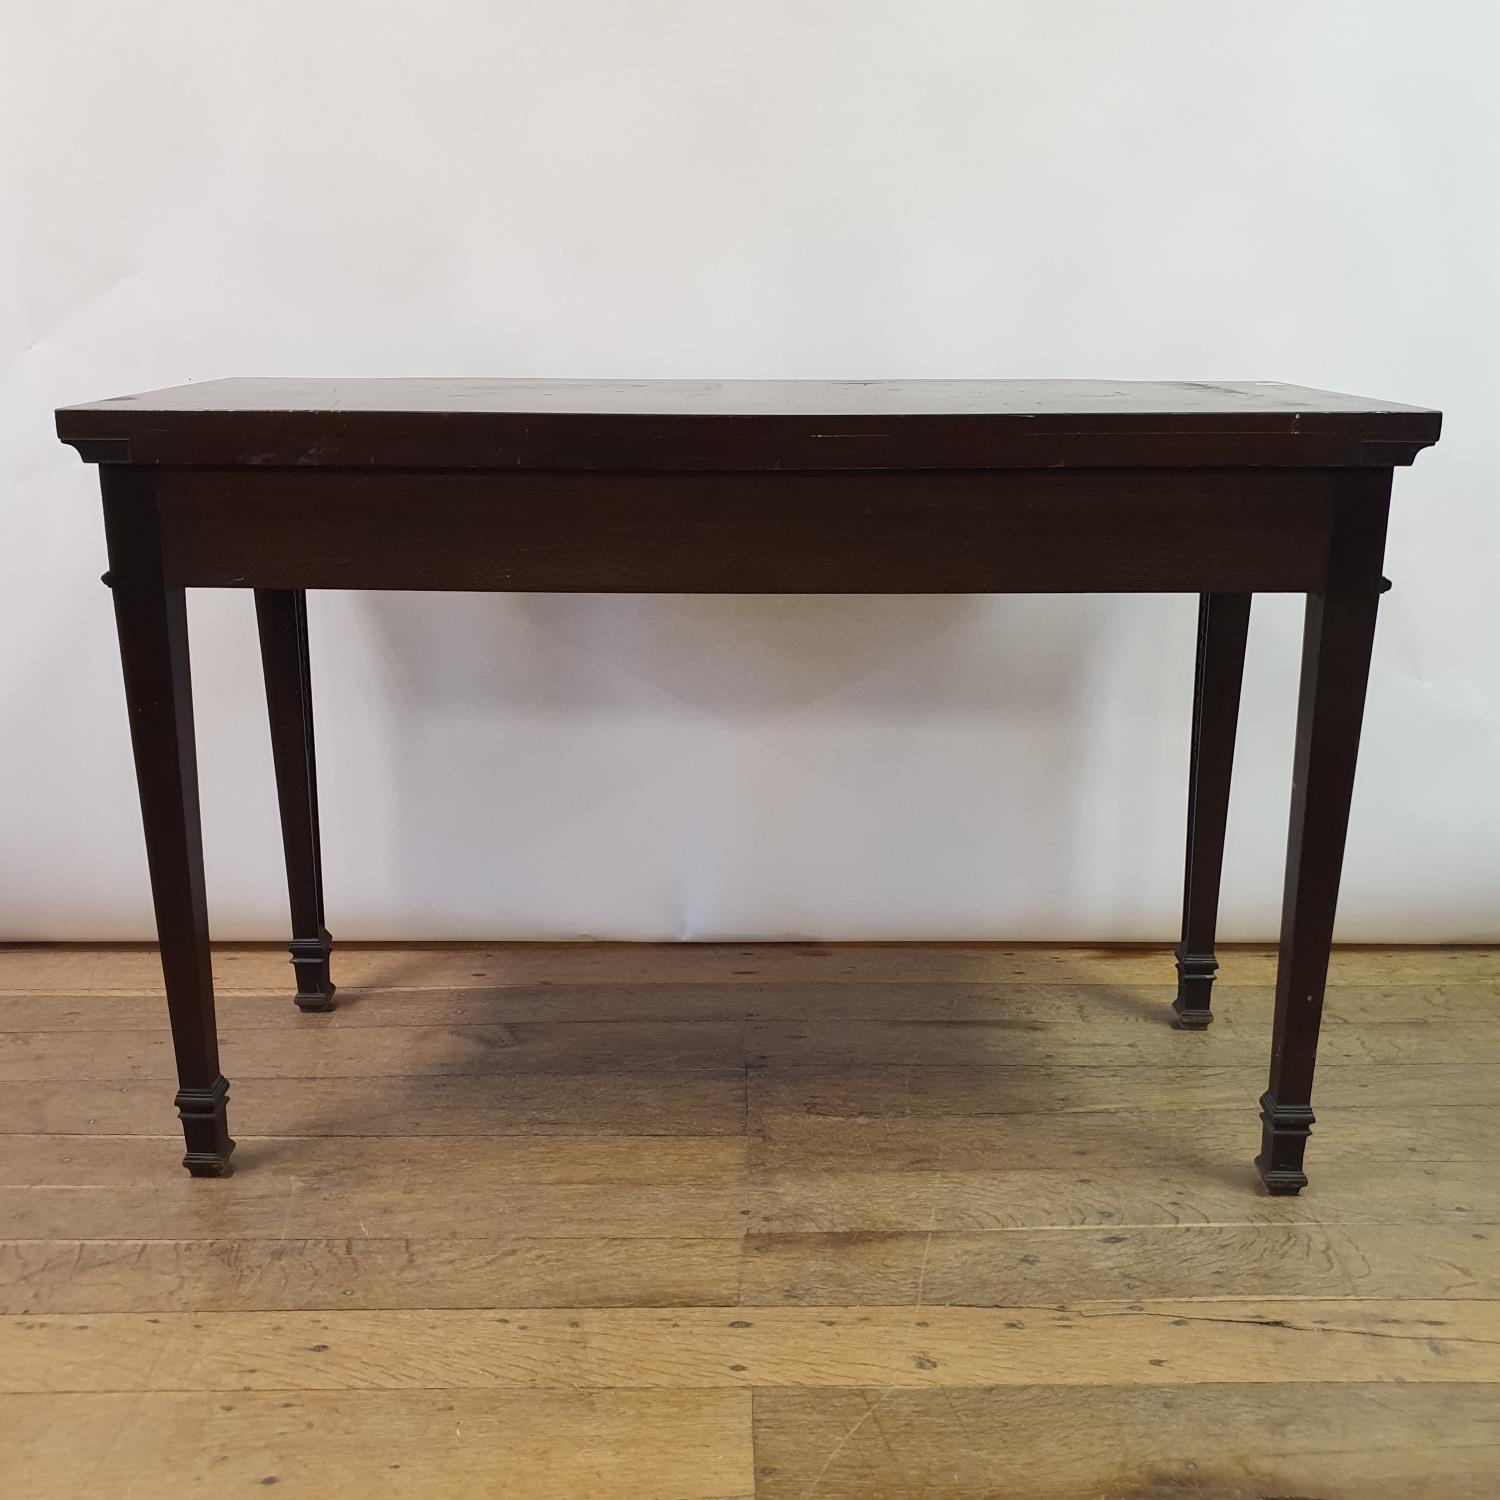 An early 20th century Adams revival mahogany side table, having a frieze drawer with carved rams - Image 2 of 7